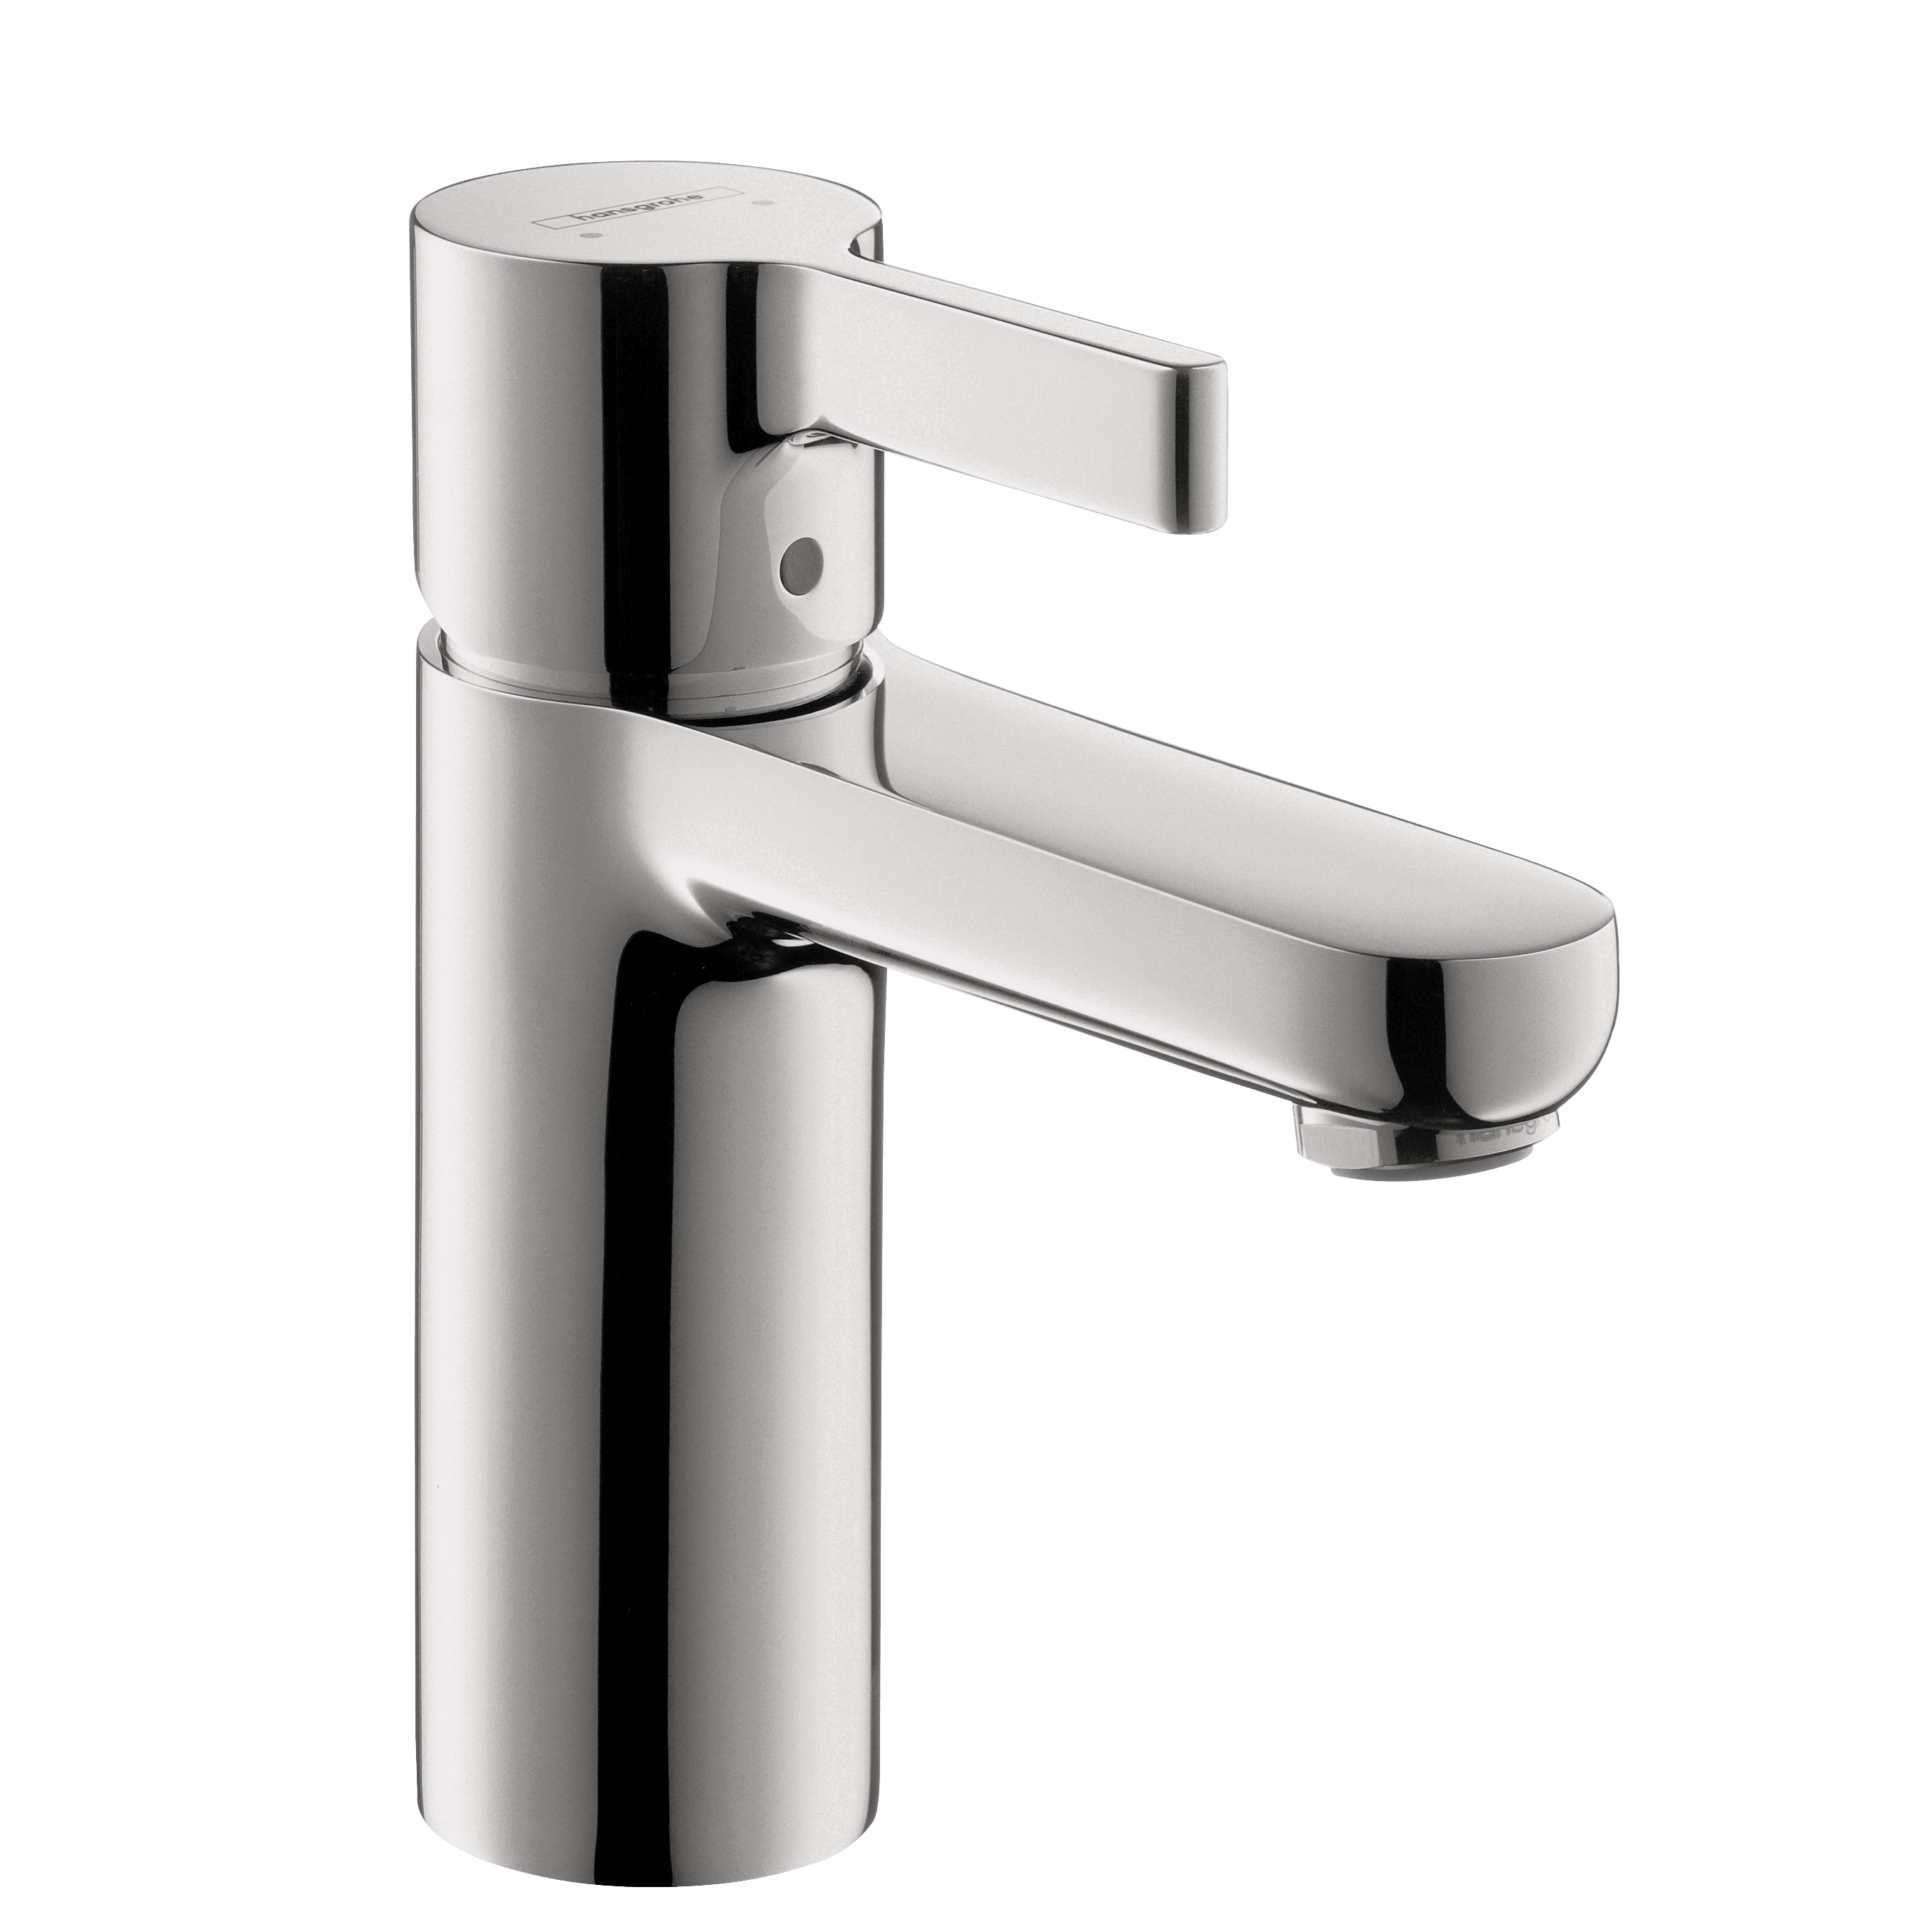 Faucets | Bathroom Faucets | Bathroom Sink Faucets | QualityBath.com